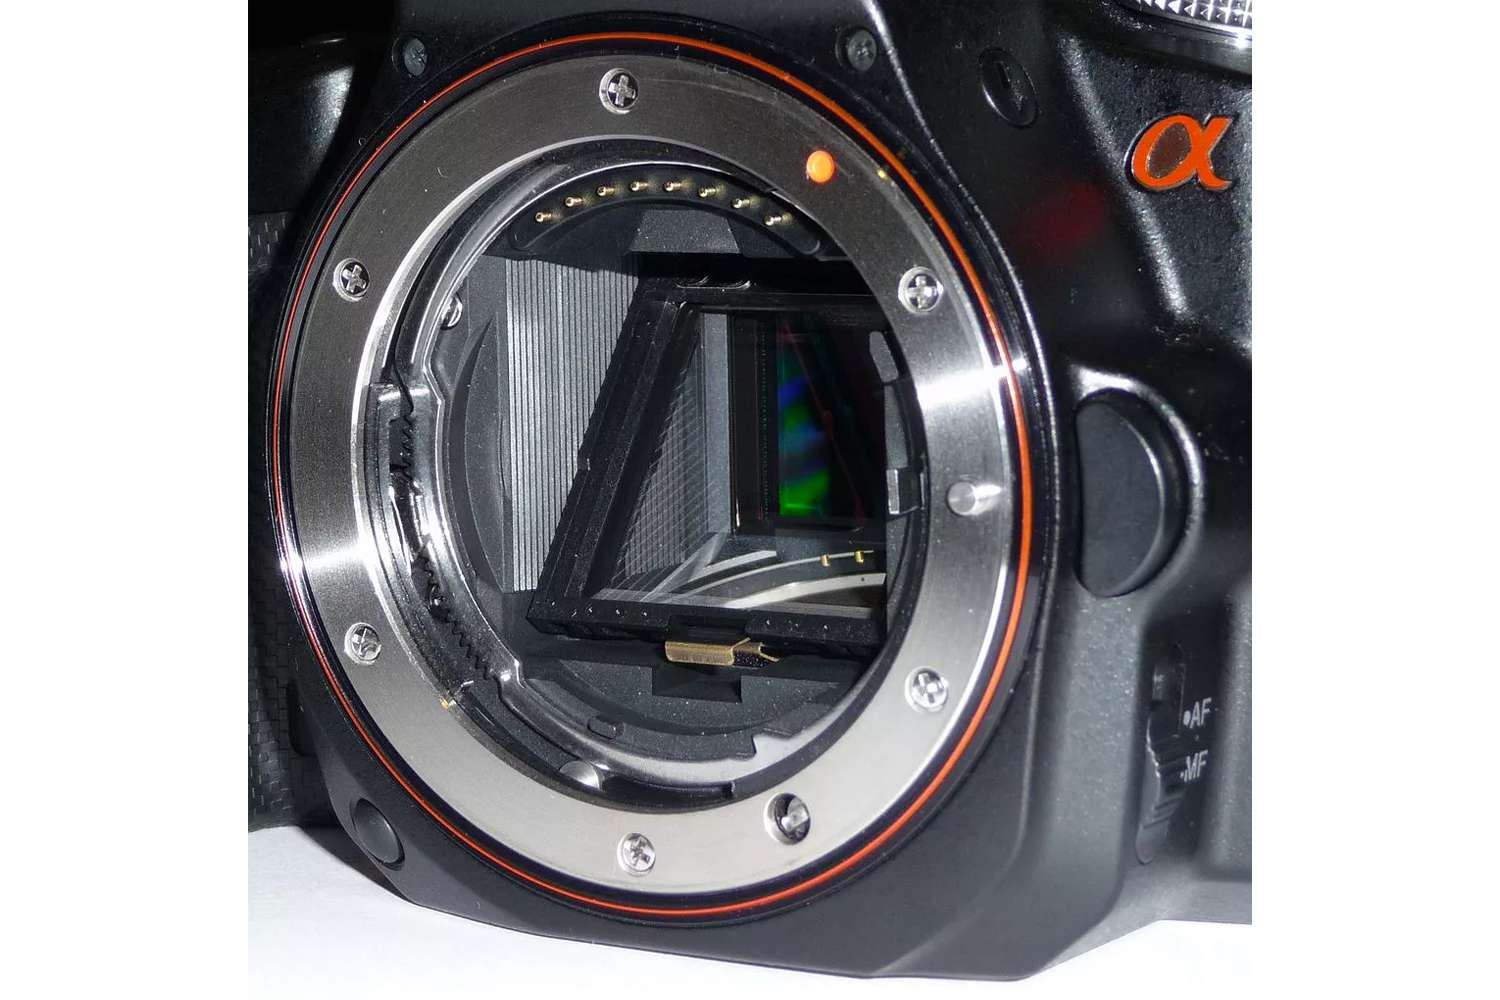 Camera body showing the mirror